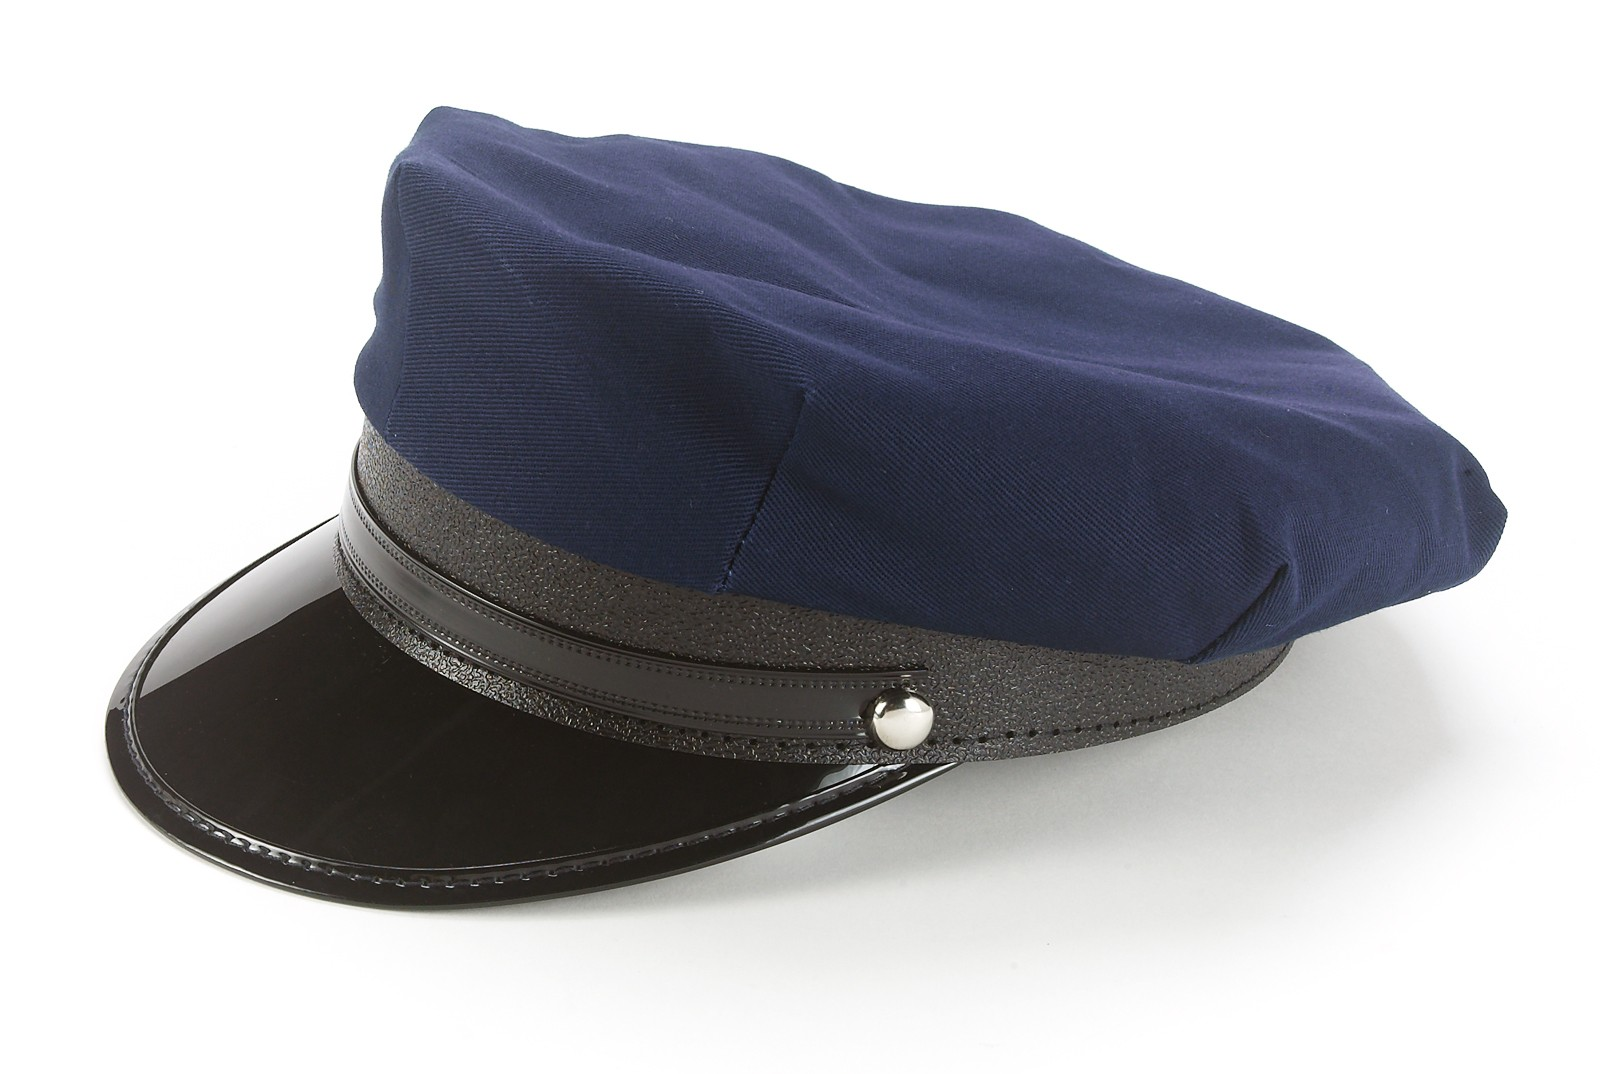 f5a952a6dbd Police Officer Child Hat Costume Accessory